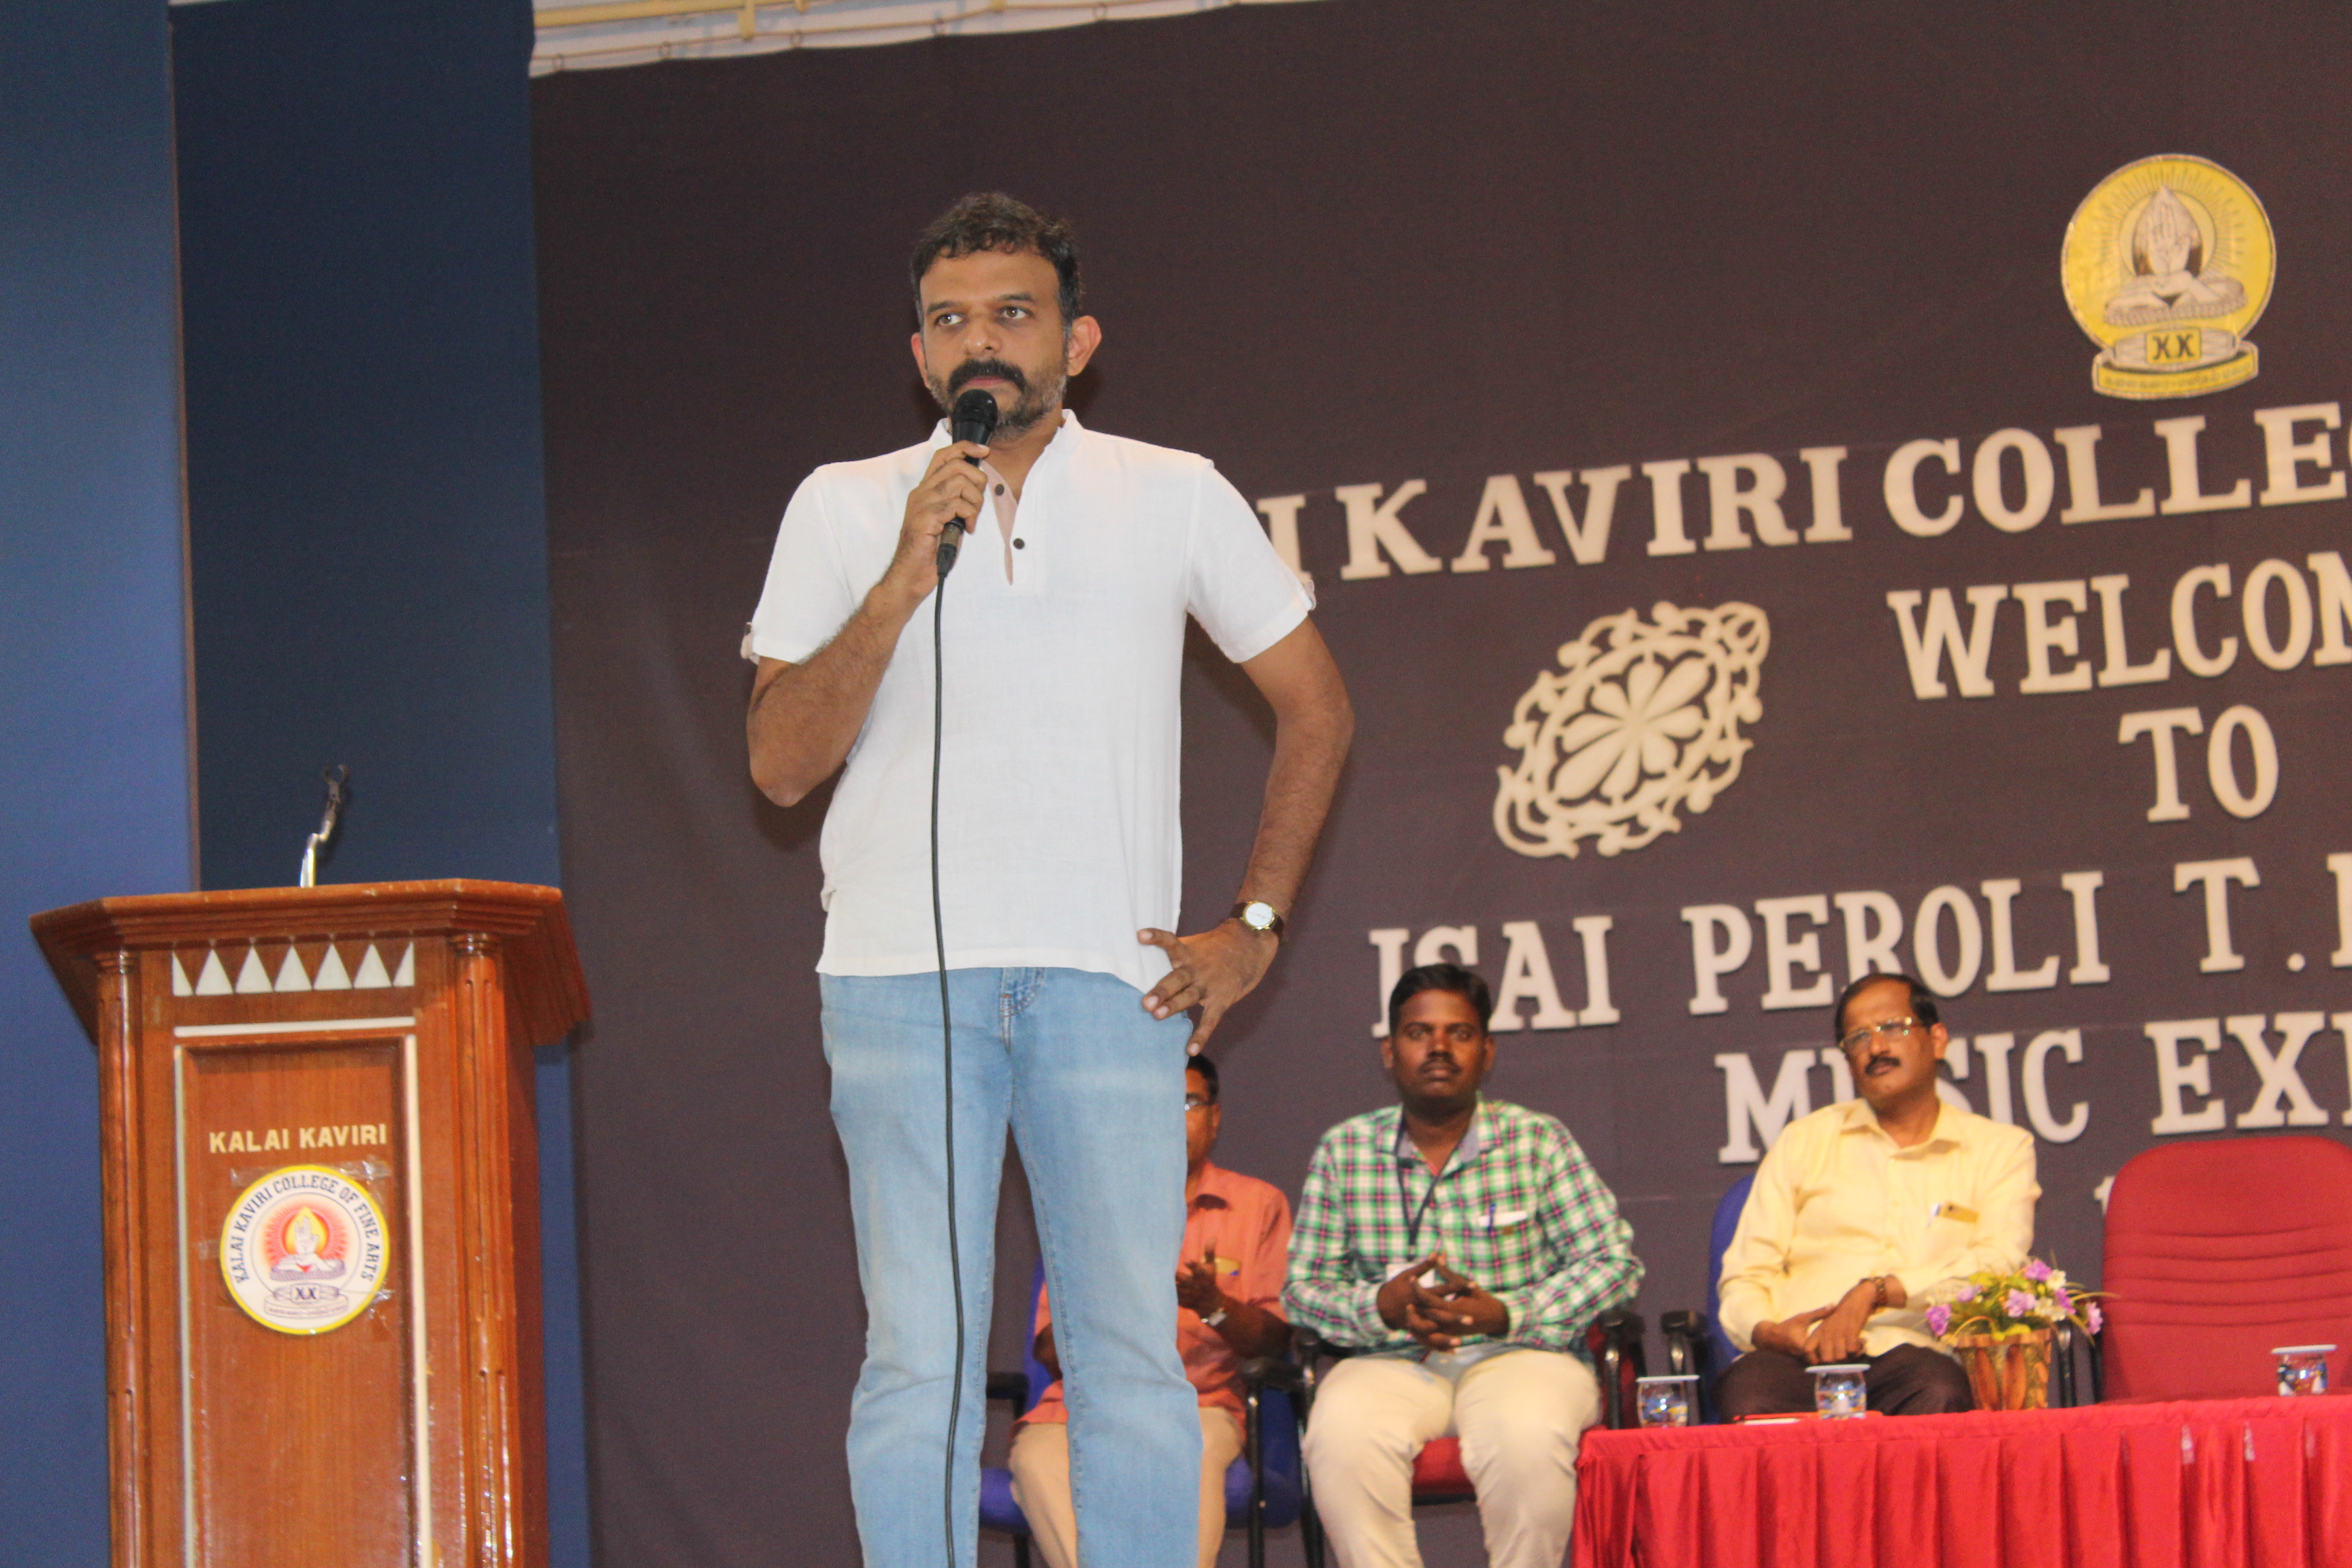 Welcome to Isai Peroli T. M. Krishna - Music Exponent 13-08-2018